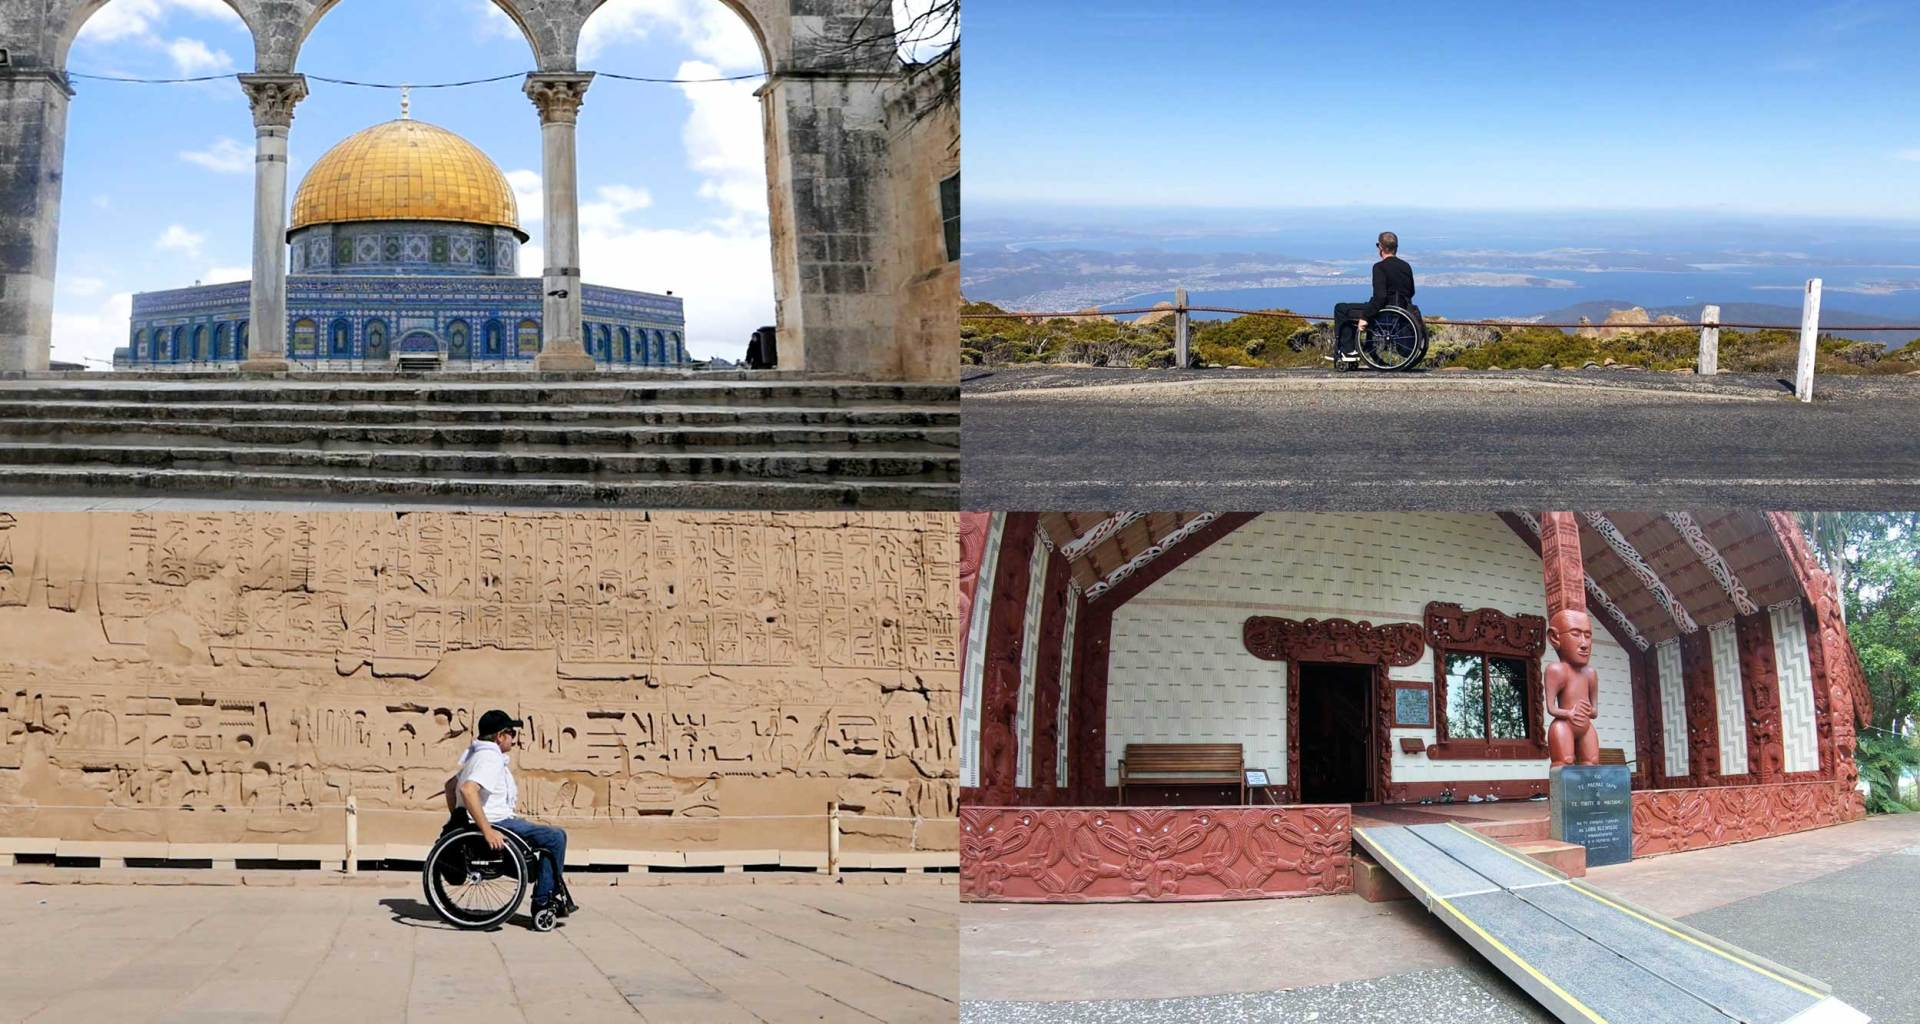 Collage: Wheelchair user in front of tourist attractions and landscapes.